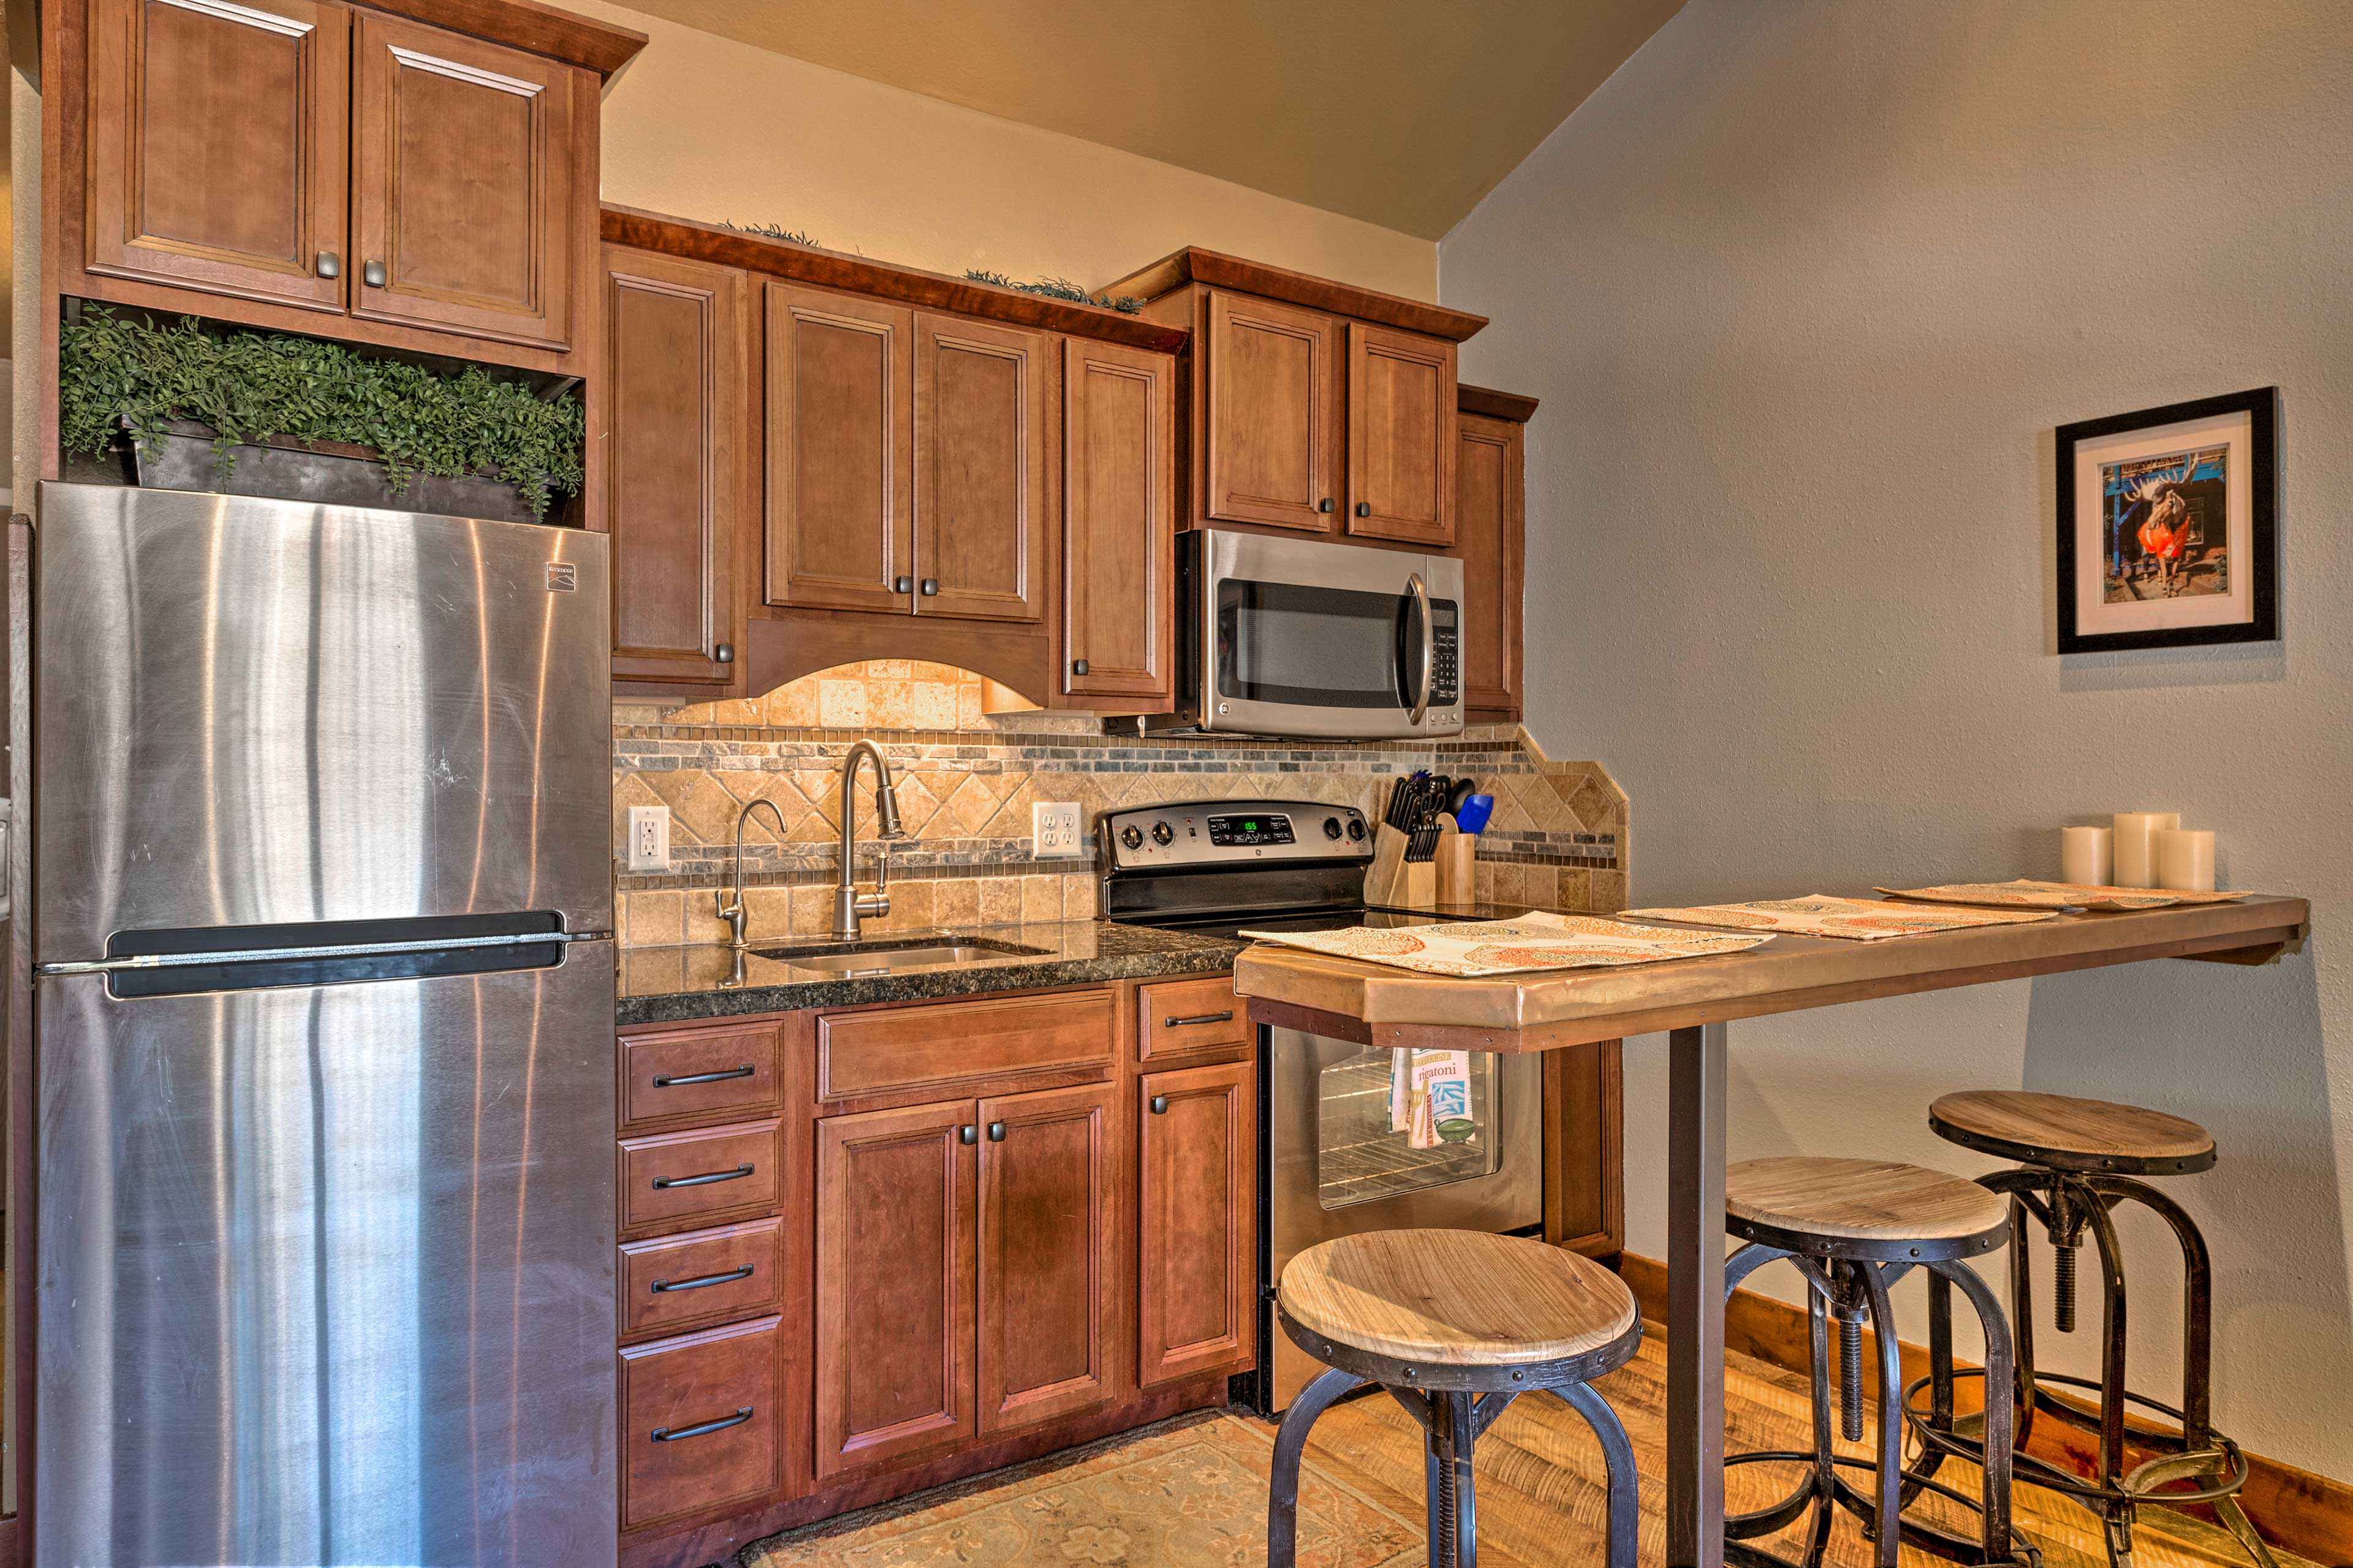 Look forward to preparing tasty meals and snacks in the fully equipped kitchen.